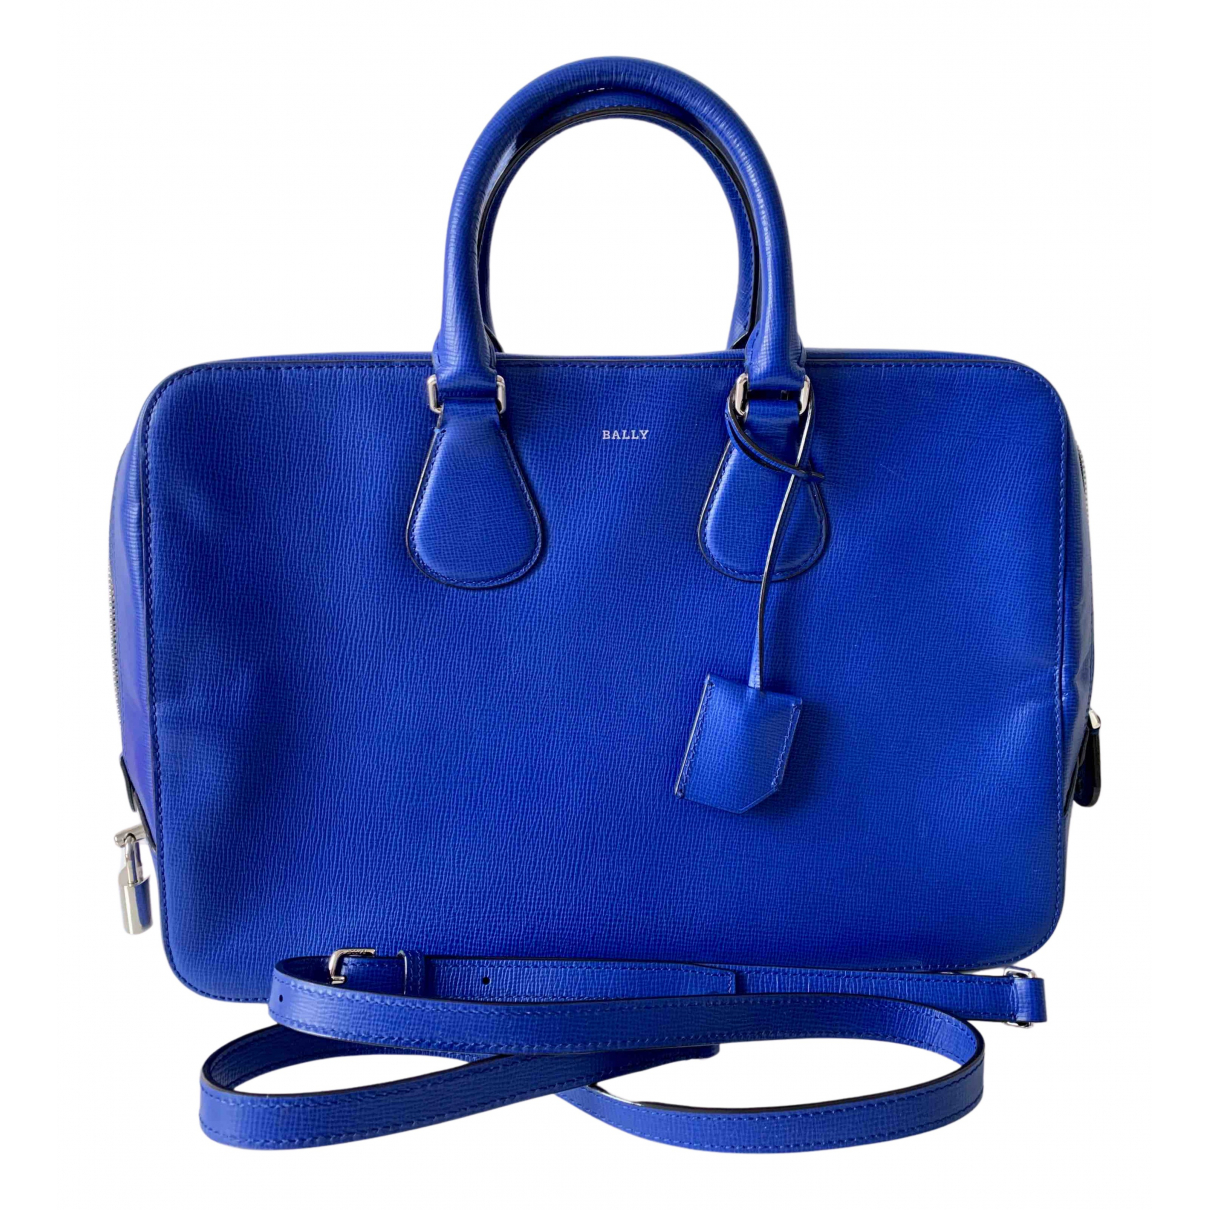 Bally N Blue Leather handbag for Women N